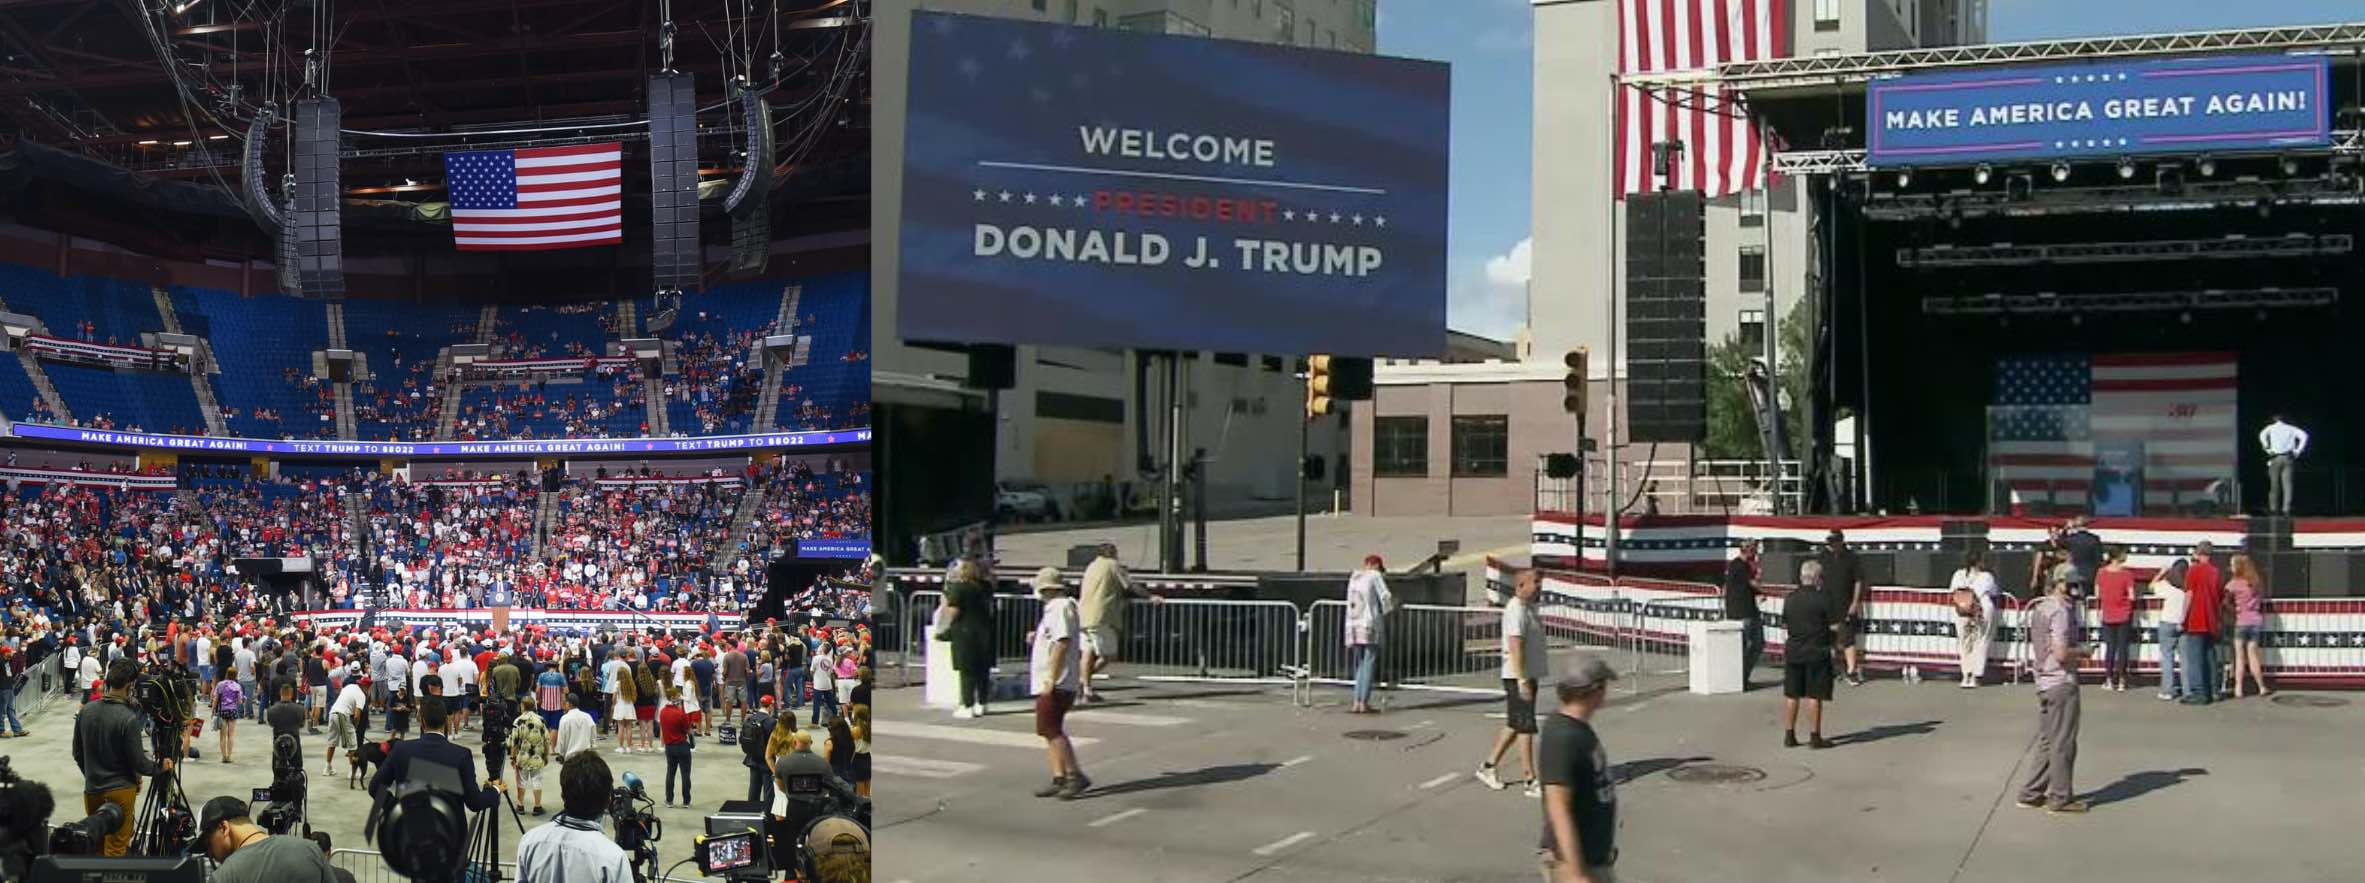 Left: there are many empty seats in the lower part of the bowl, and there is virtually nobody sitting in the upper part; Right: there are perhaps a dozen people milling around an area with giant TVs that was clearly set up to accomodate a crowd of thousands